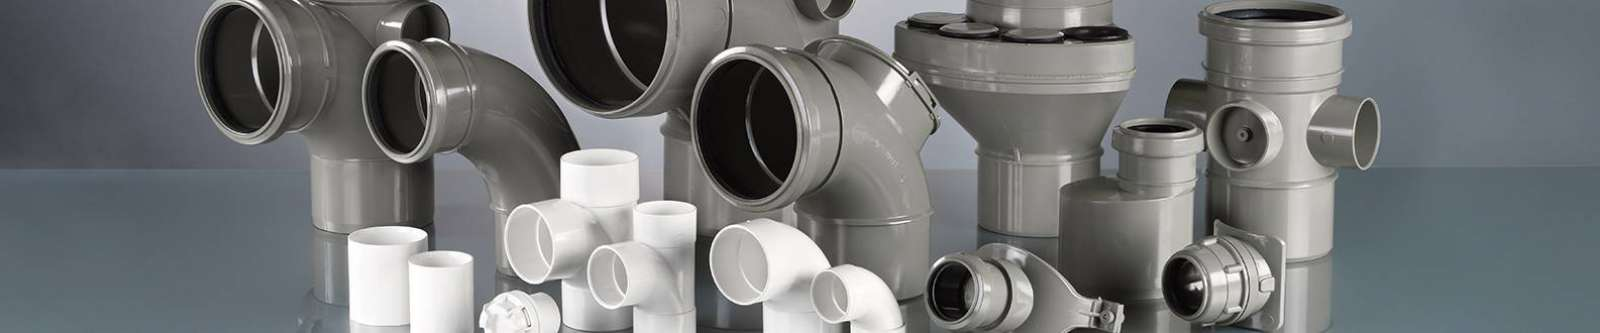 Terrain PVC solvent weld soil drainage pipe system for commercial buildings